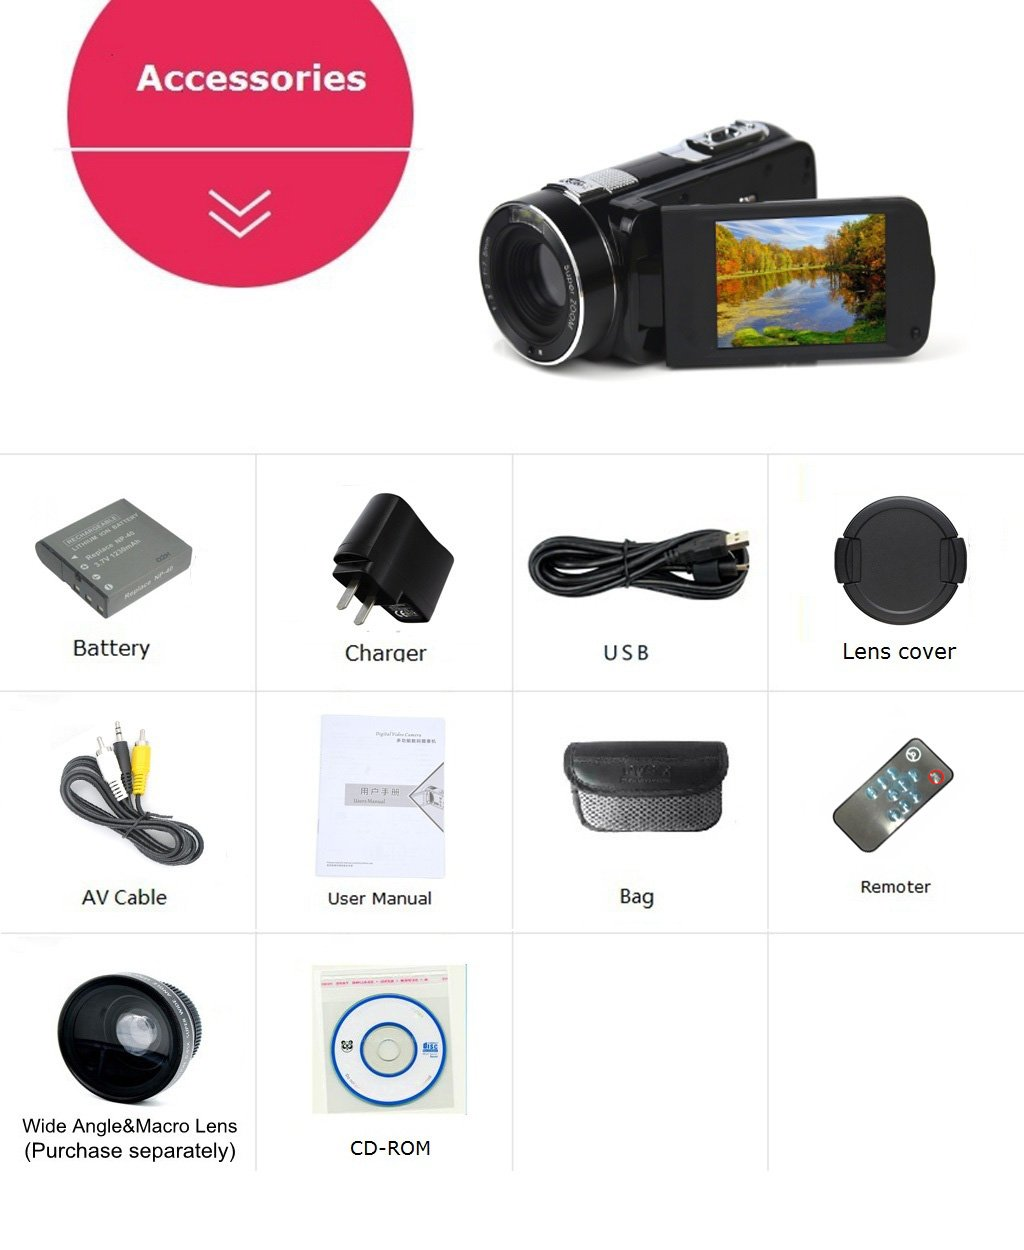 SEREE HDV-M6 Full HD 1080P Beauty Face Max. 24MP DIS Face Detection Elegant Appearance Self Timer Camcorder FHD Video Camera (HDV-M6) by SEREE (Image #7)